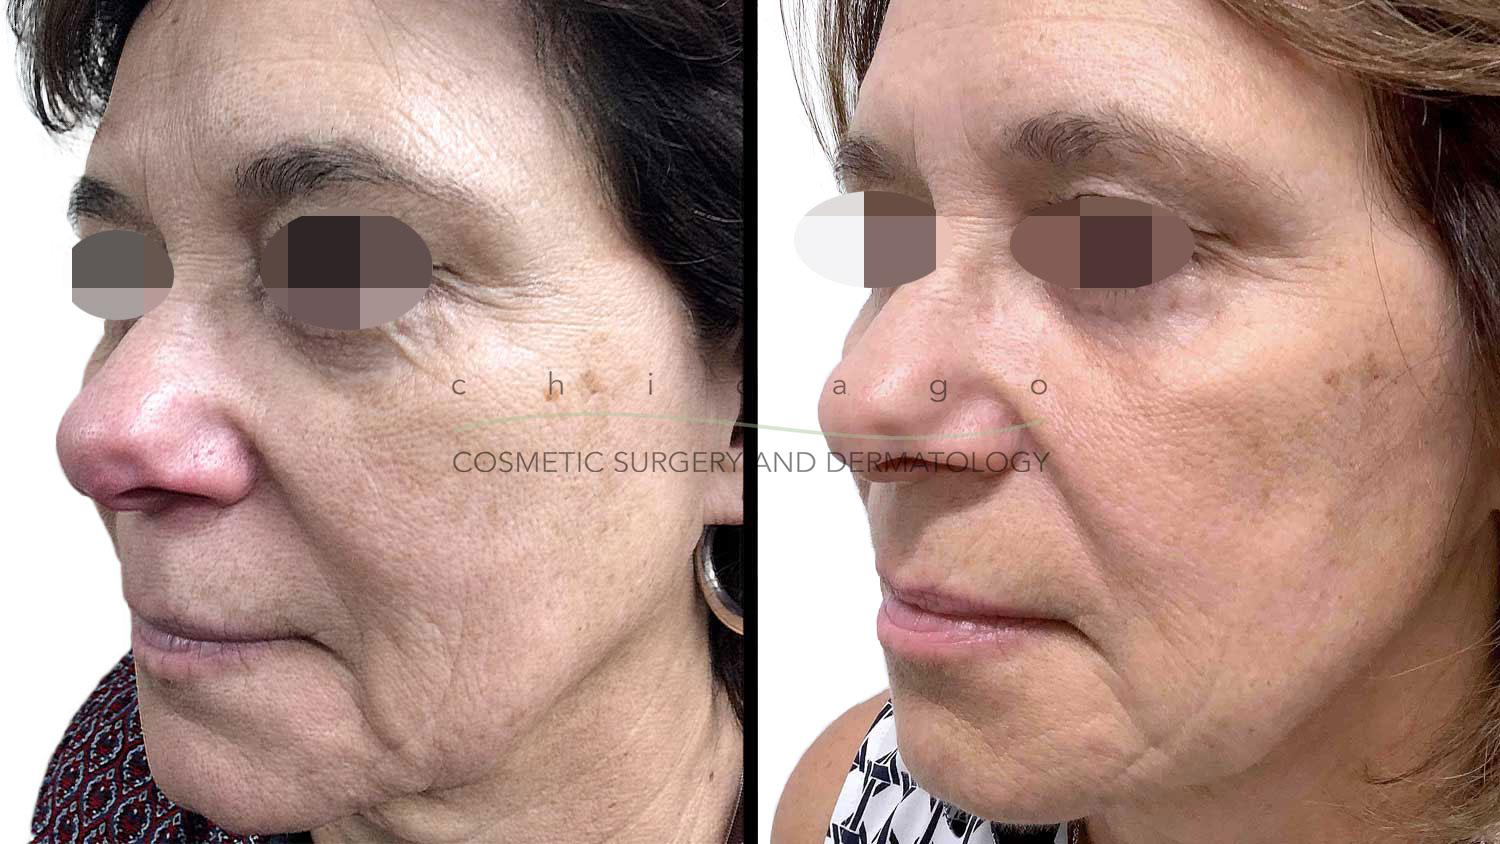 Skin rejuvenation with Restylane and Radiesse by Dr. Fine